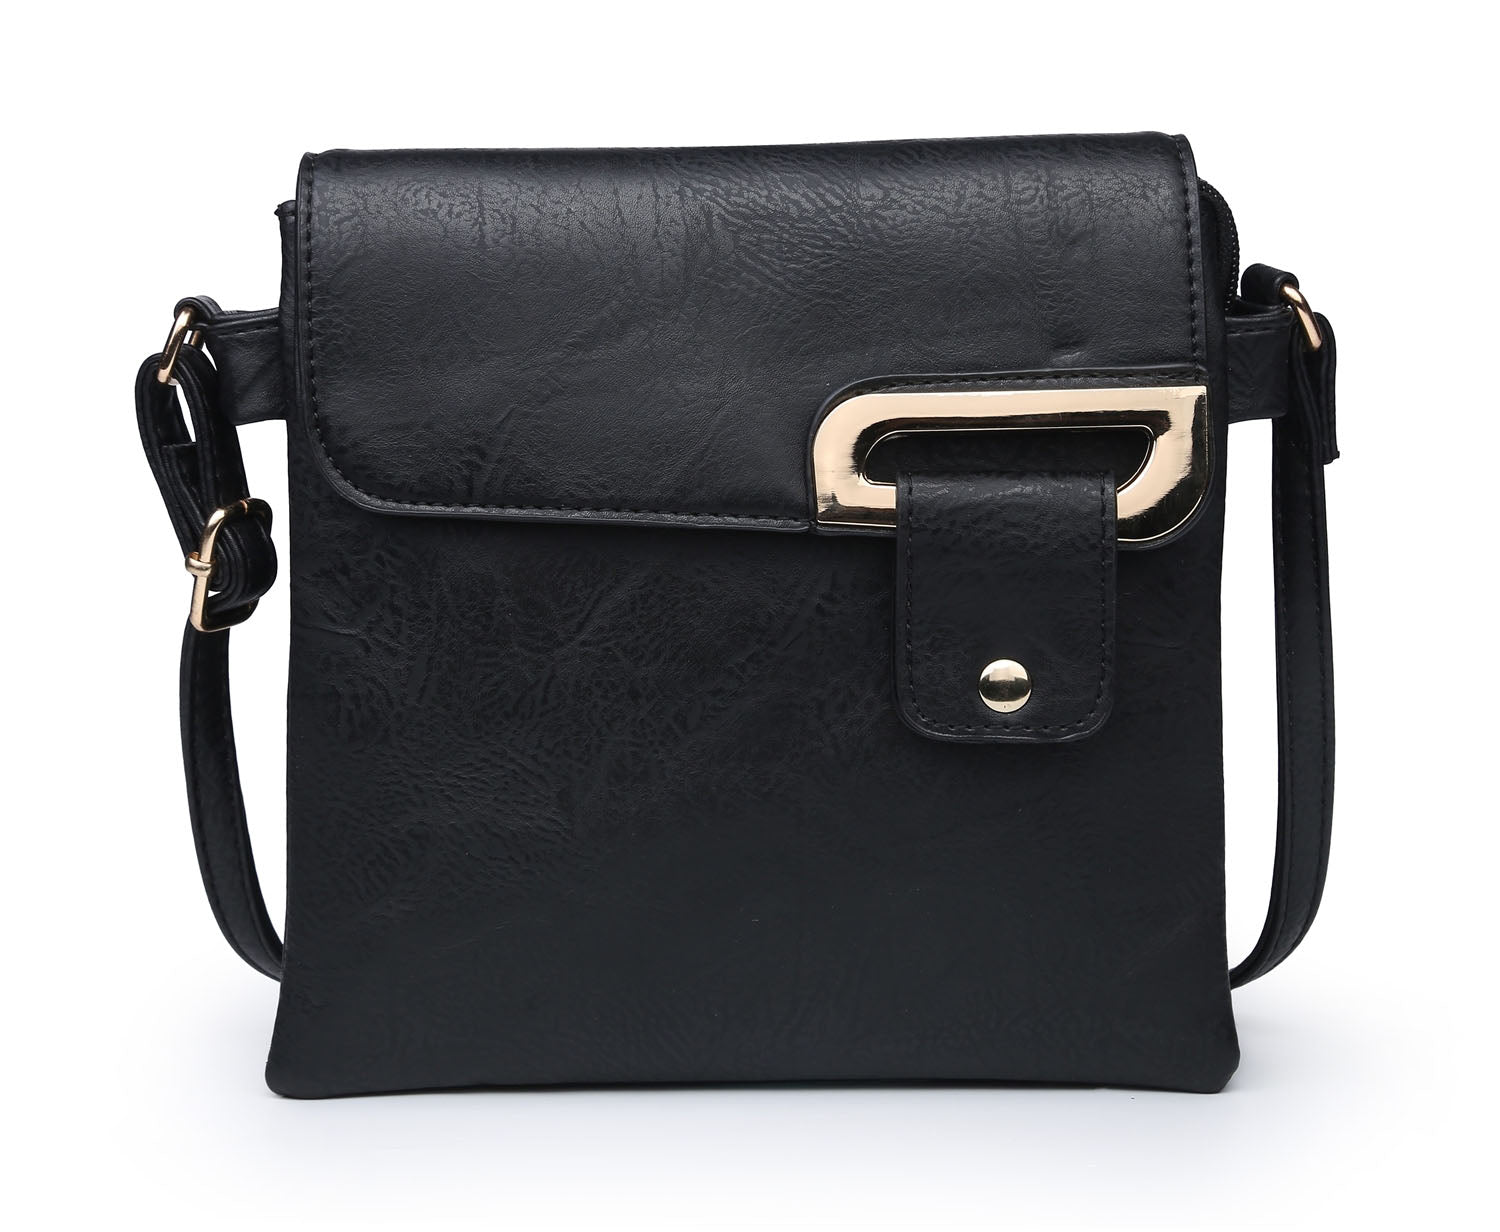 SMALL BLACK MULTI POCKET CROSSBODY MESSENGER BAG